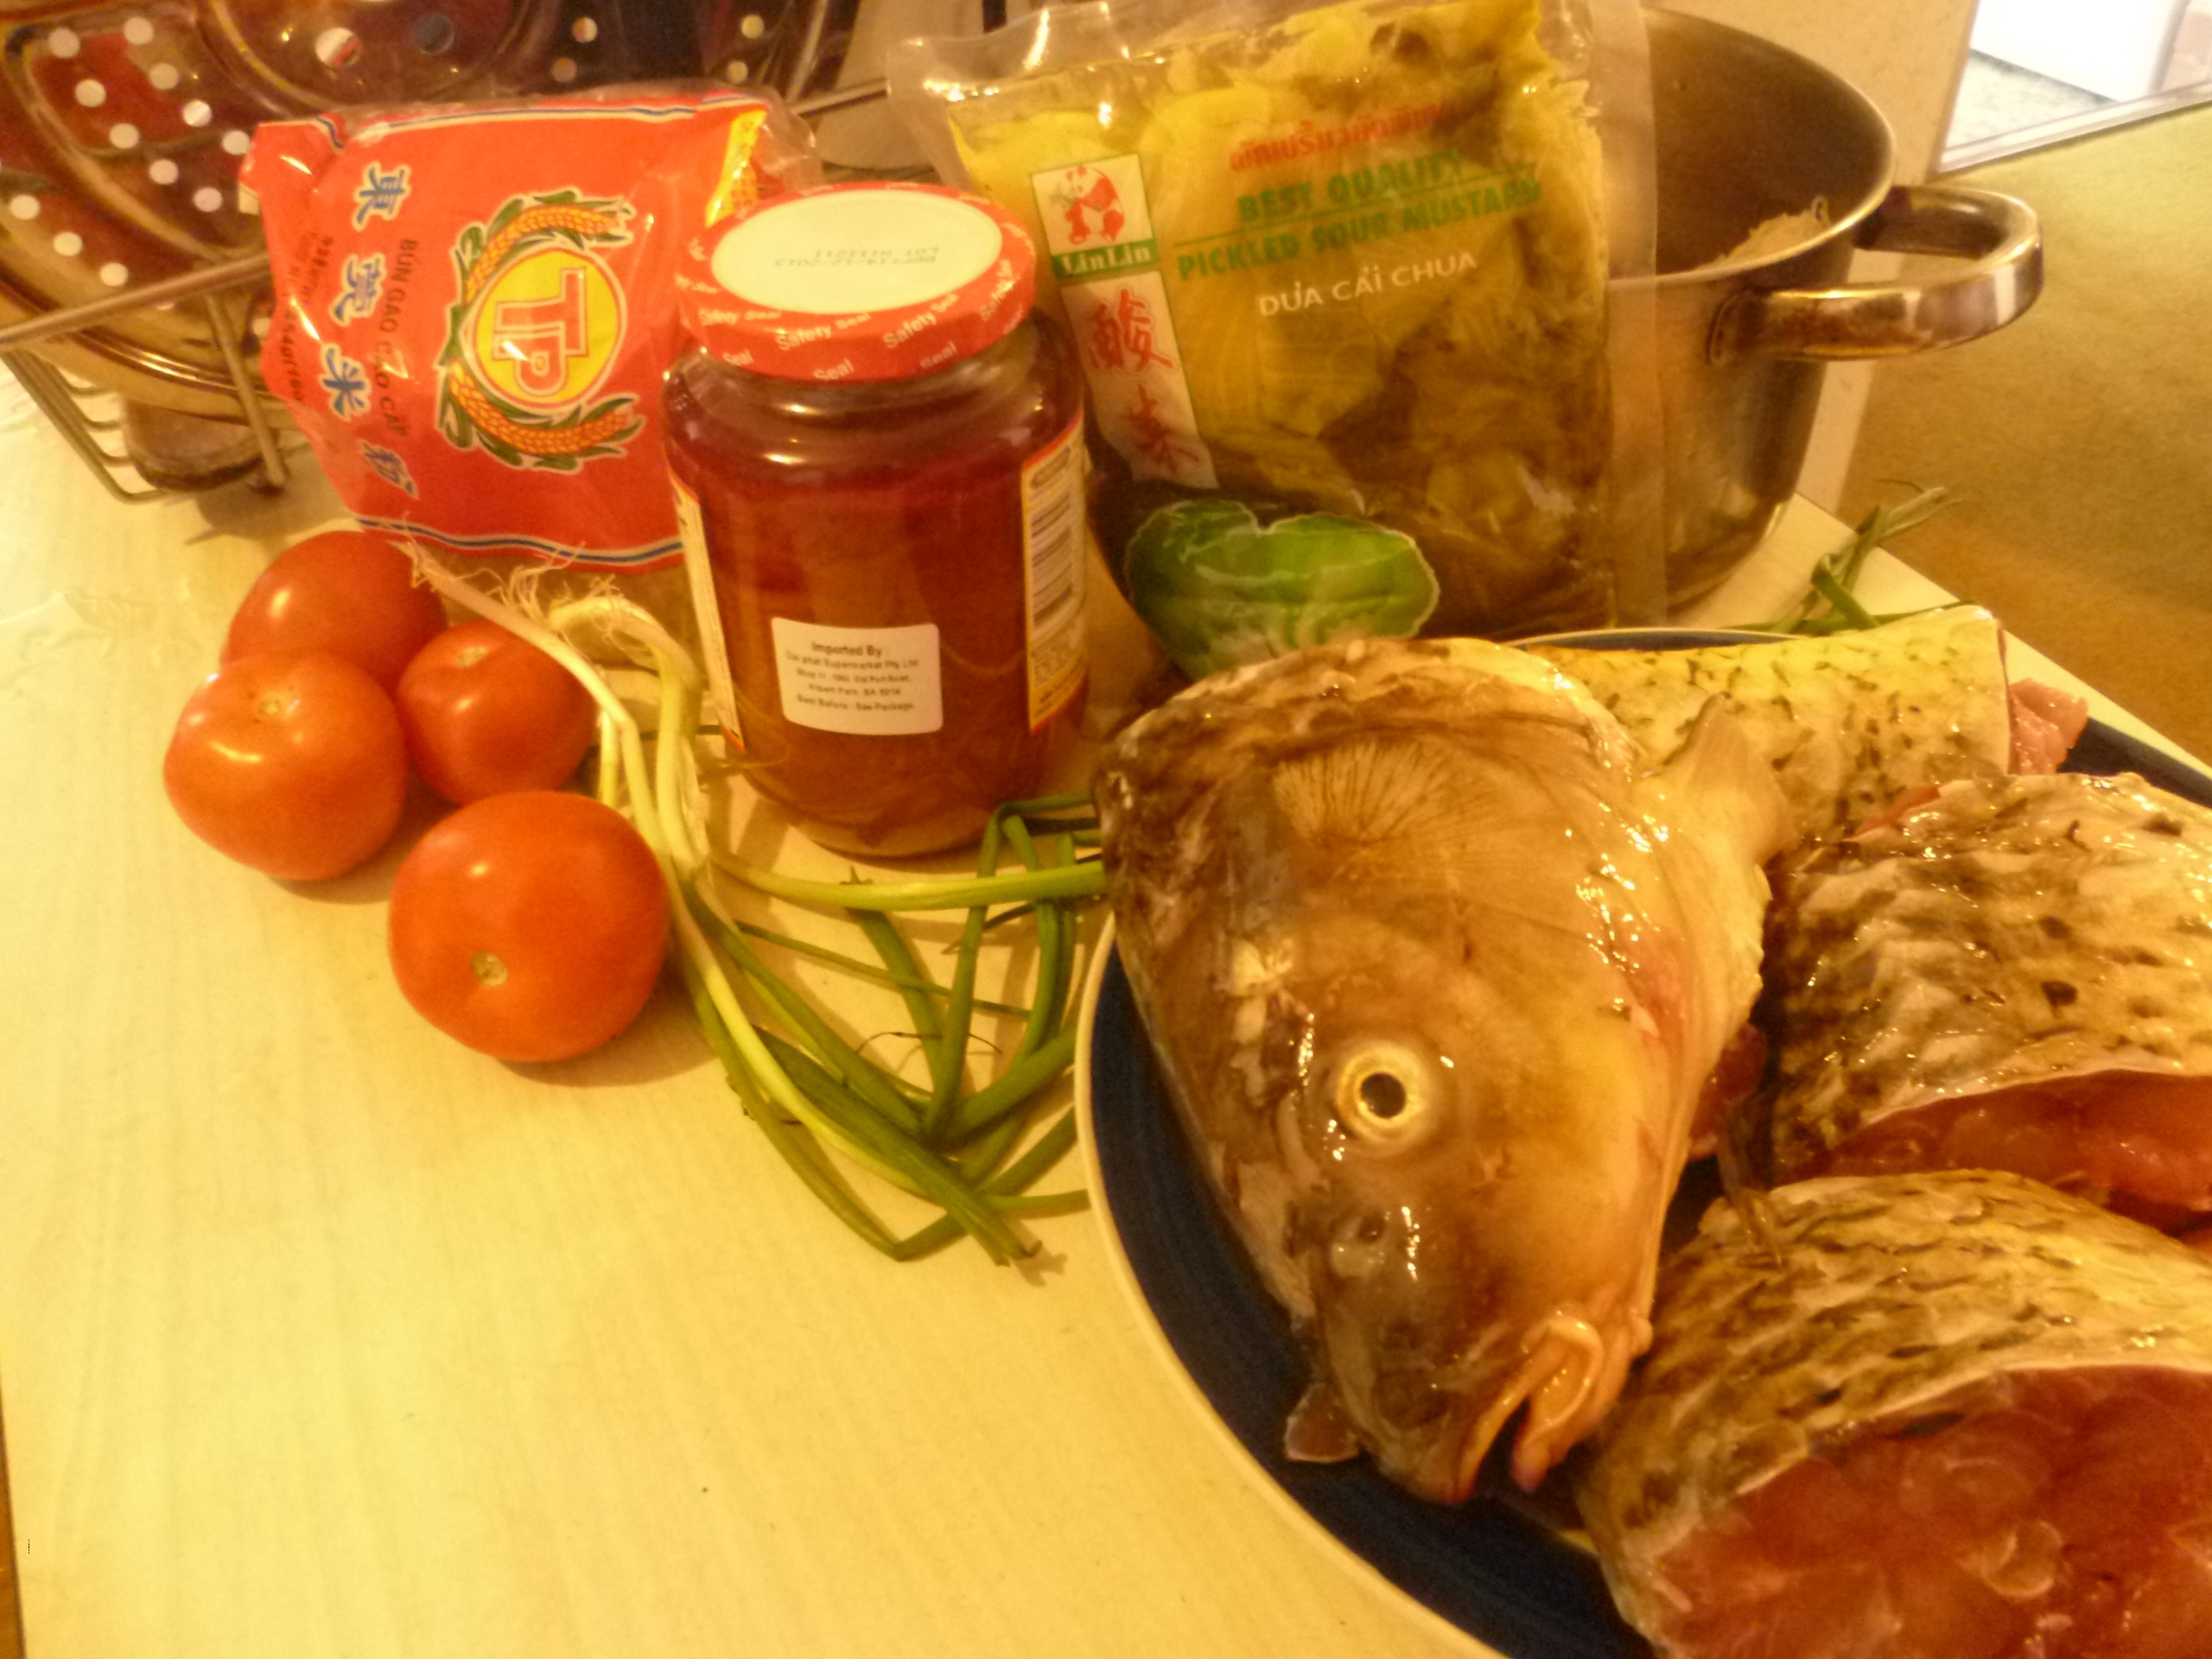 Pickled carp. Recipes for beginners culinary 78